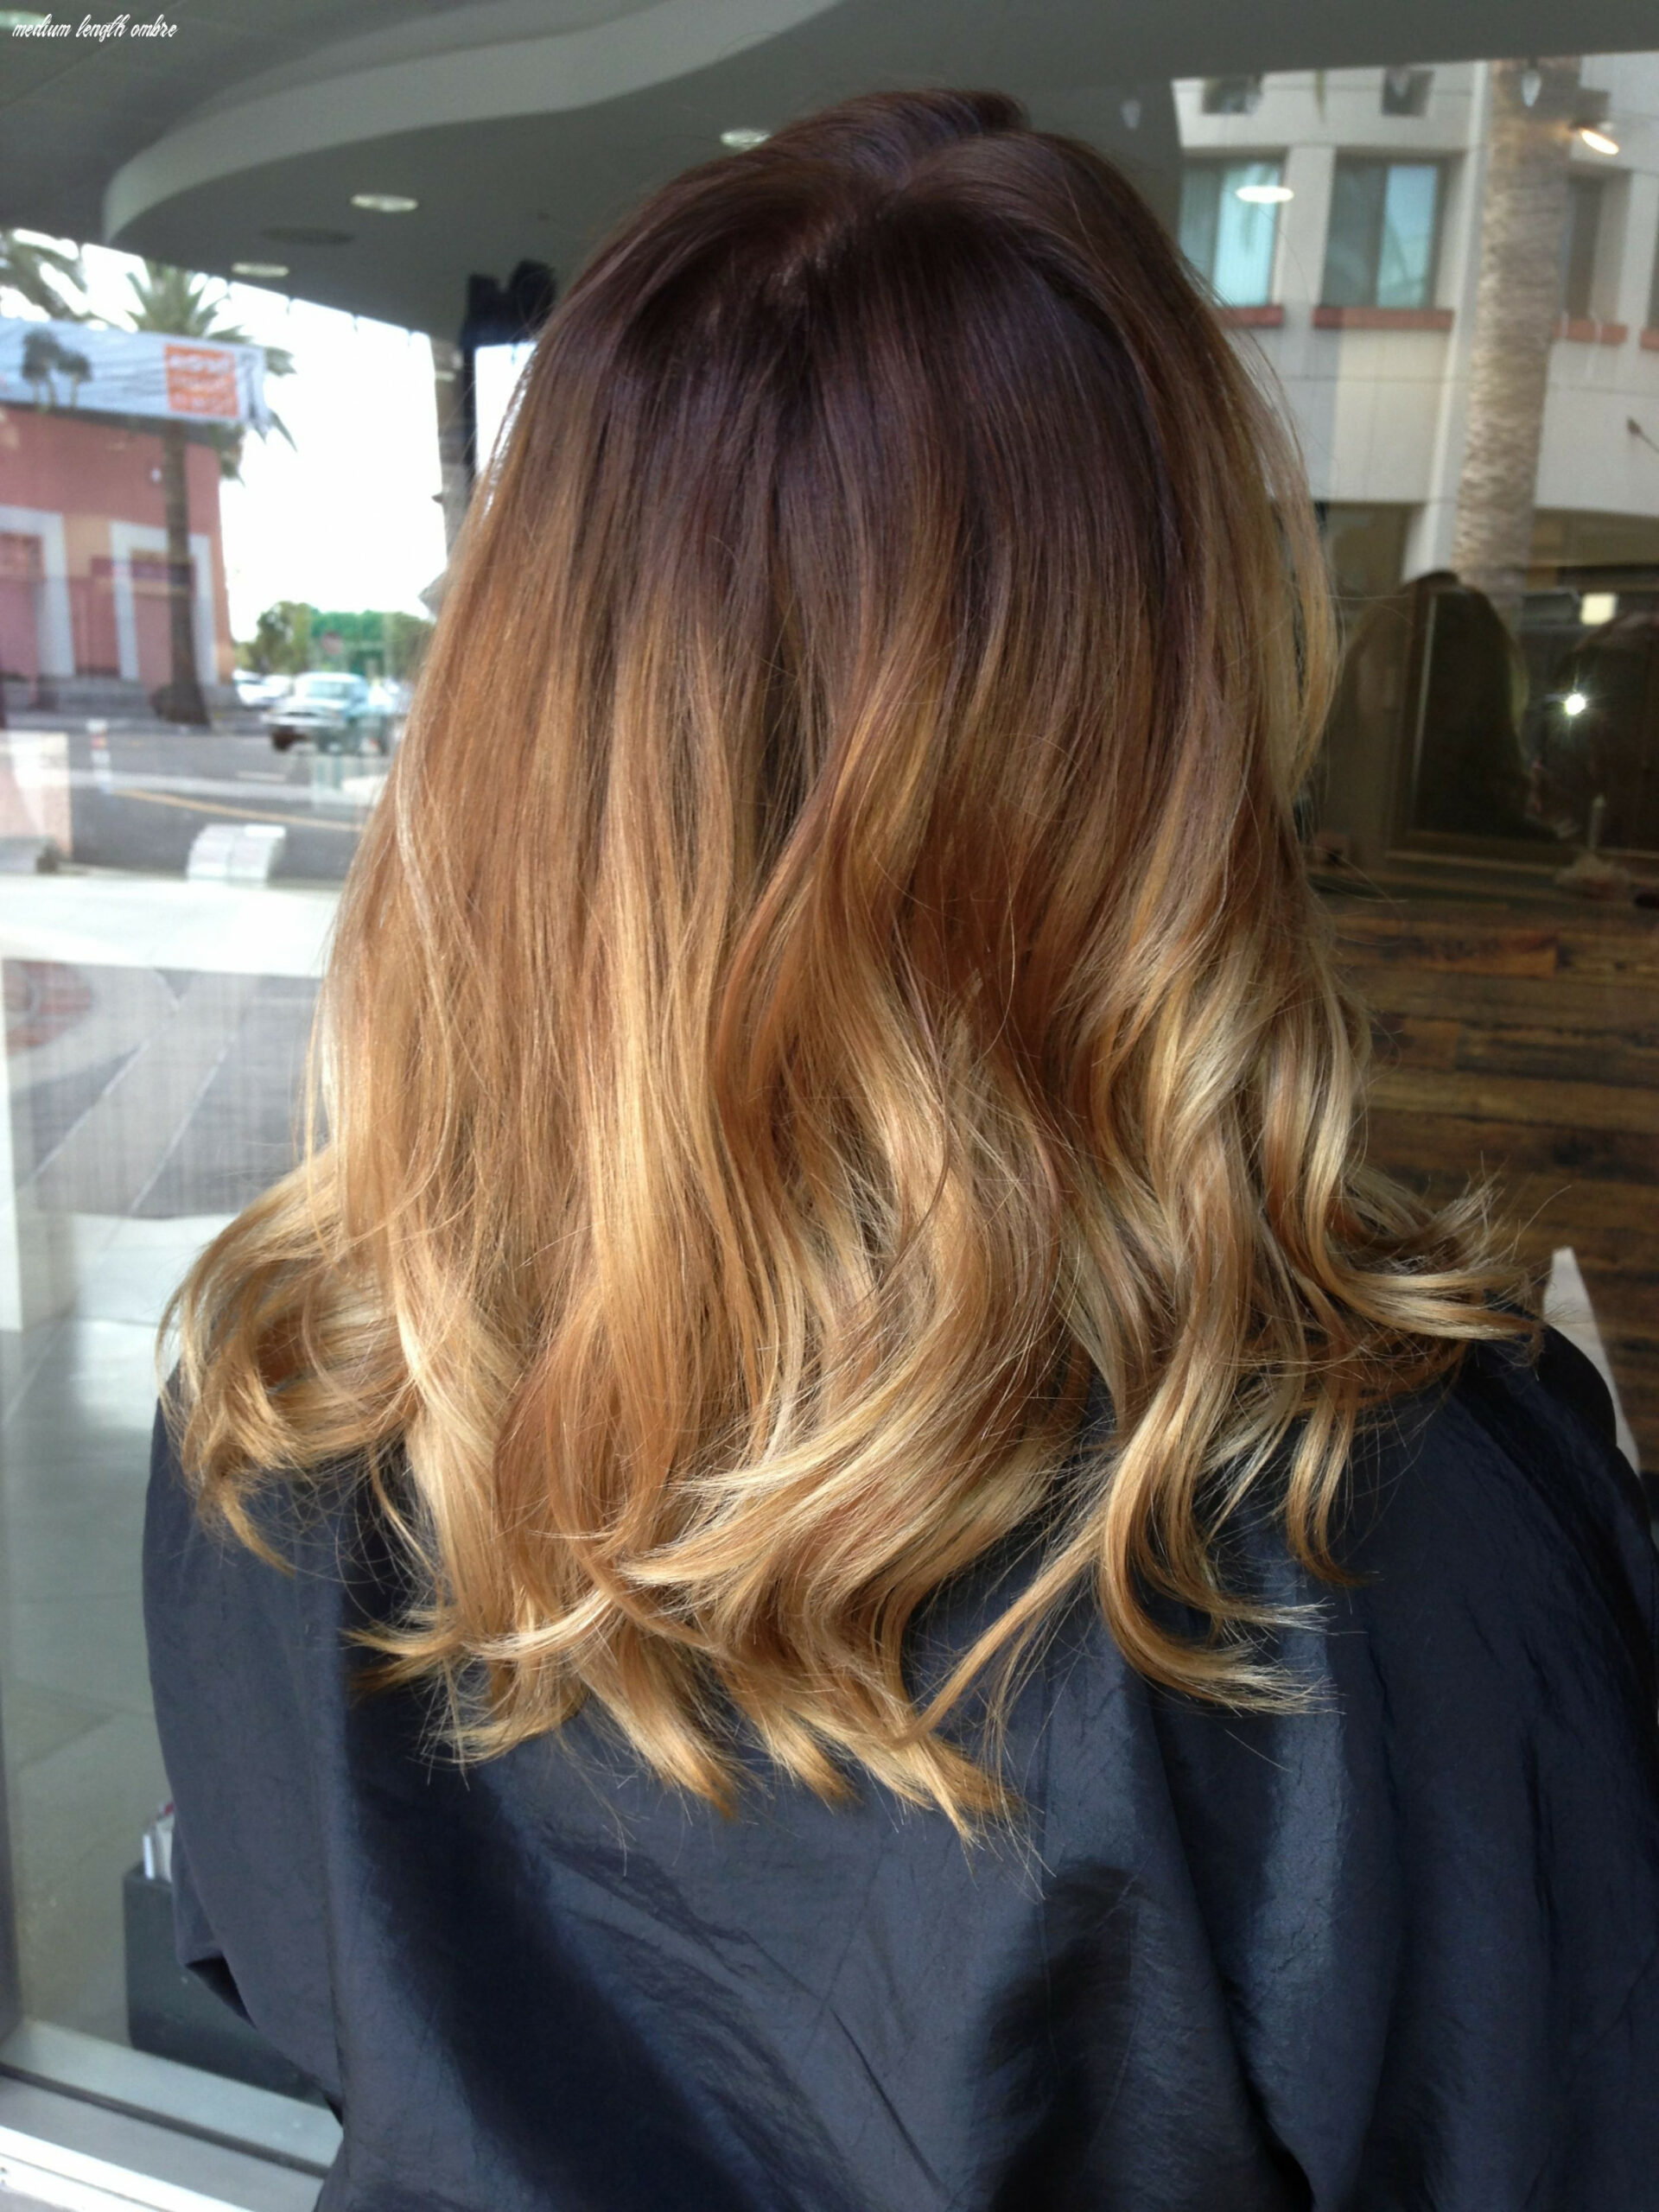 Balayage ombré on shoulder length hair (with images) | medium